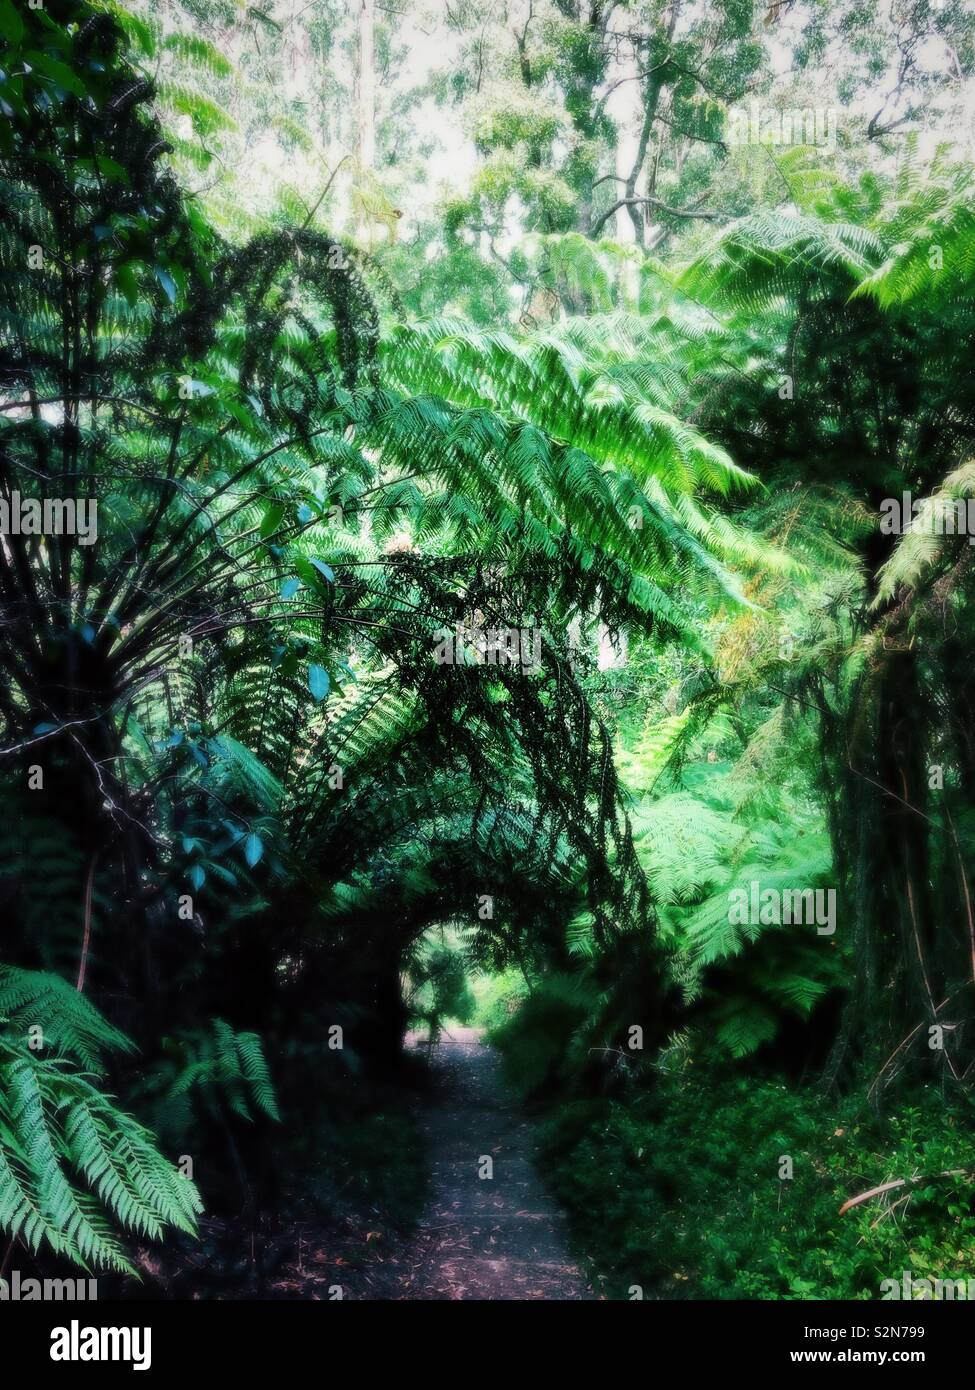 A forest track through the green ferns and gum trees, Sassafras, Victoria, Australia - Stock Image